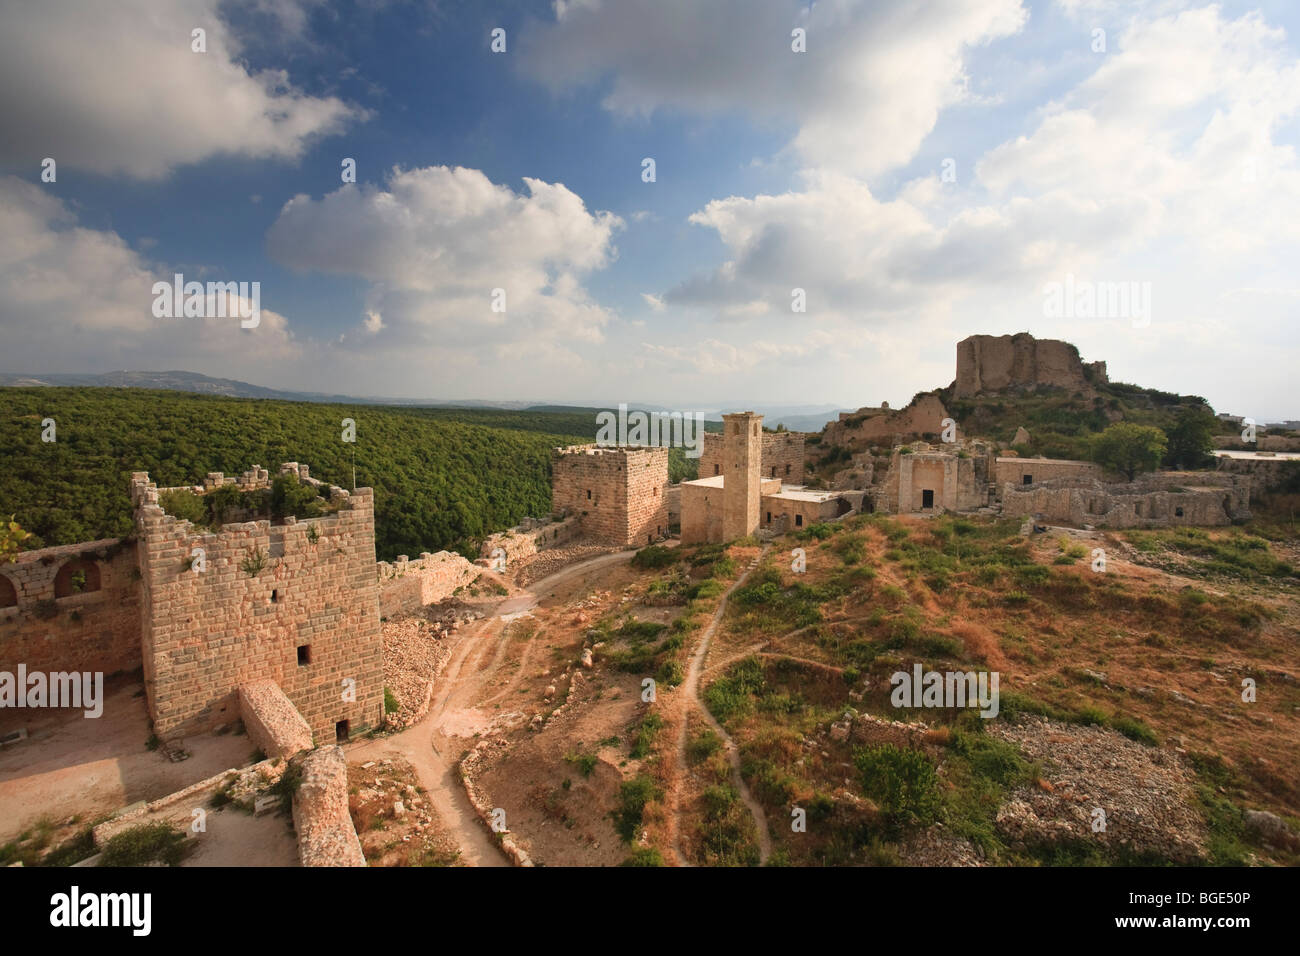 Syria, Northern Coast, Qalaat Salah ad Din (Saladin Crusader Castle), view from the ramparts - Stock Image